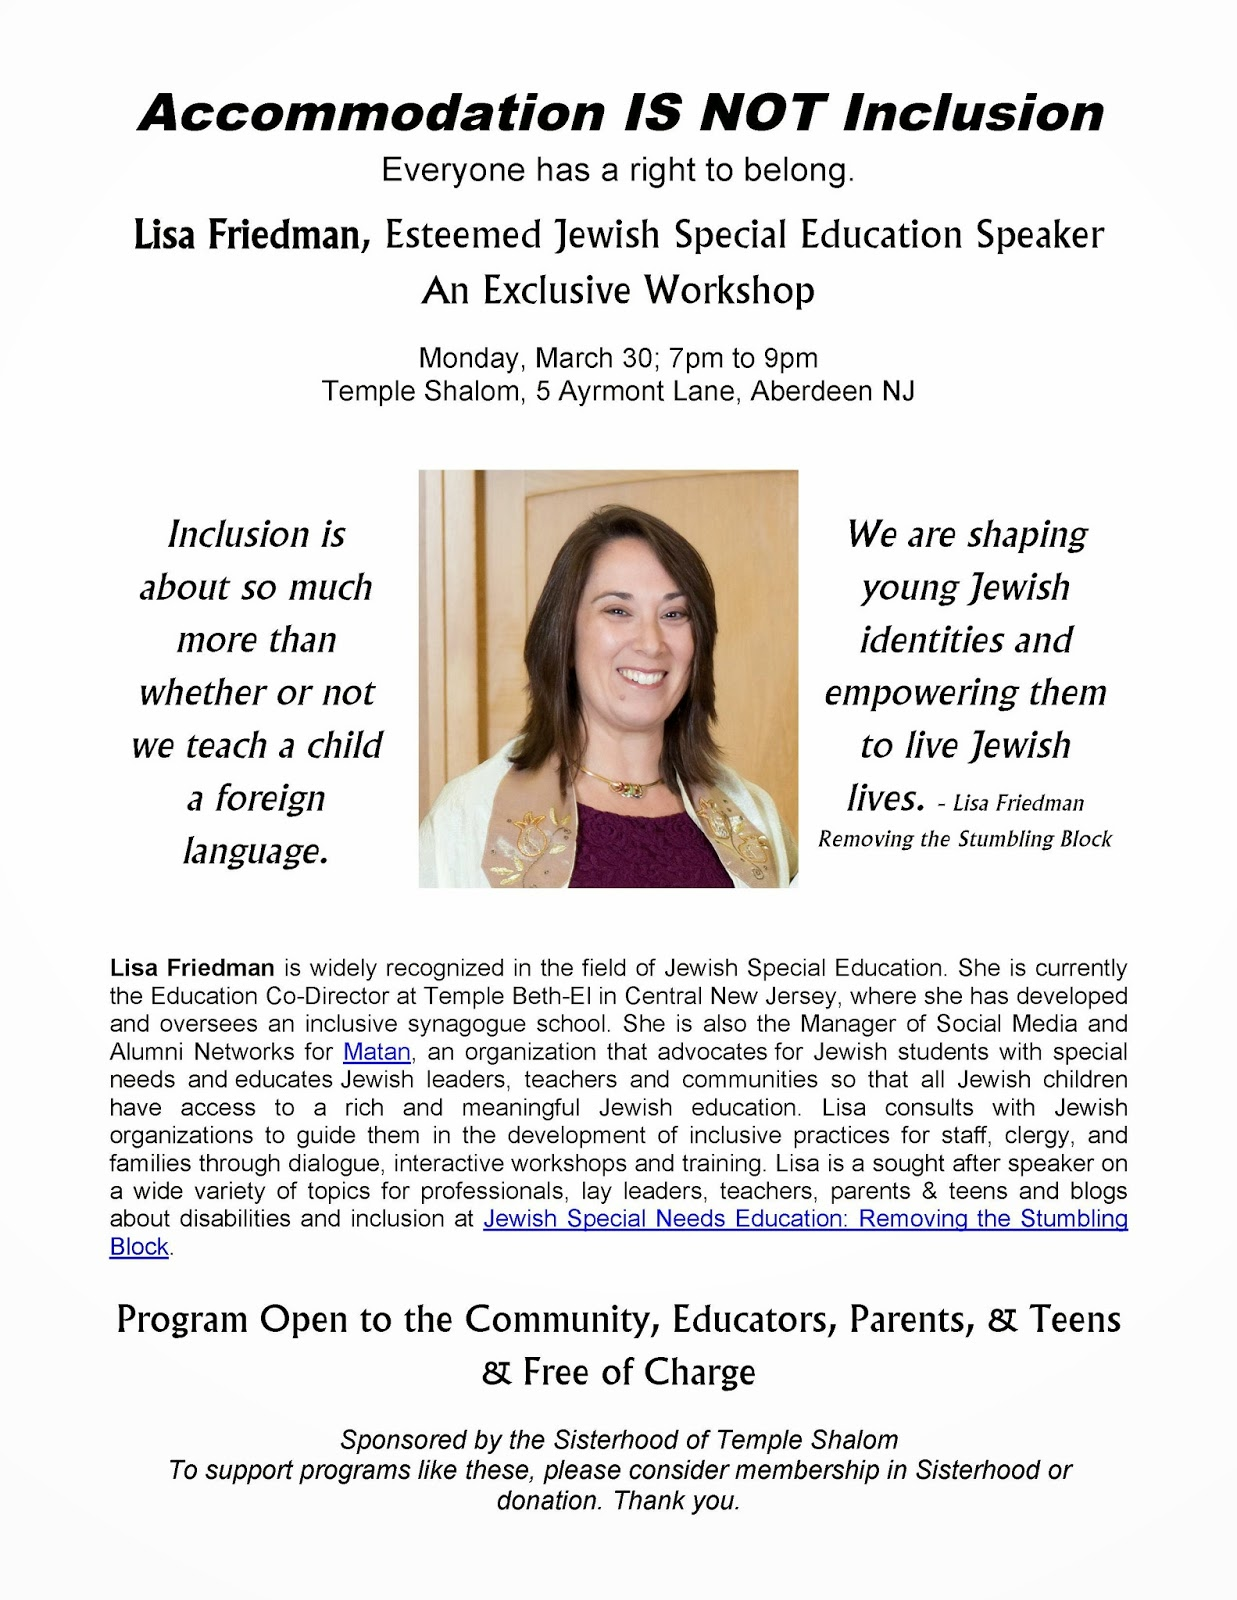 Lisa Friedman at Temple Shalom, Aberdeen; Removing the Stumbling Block